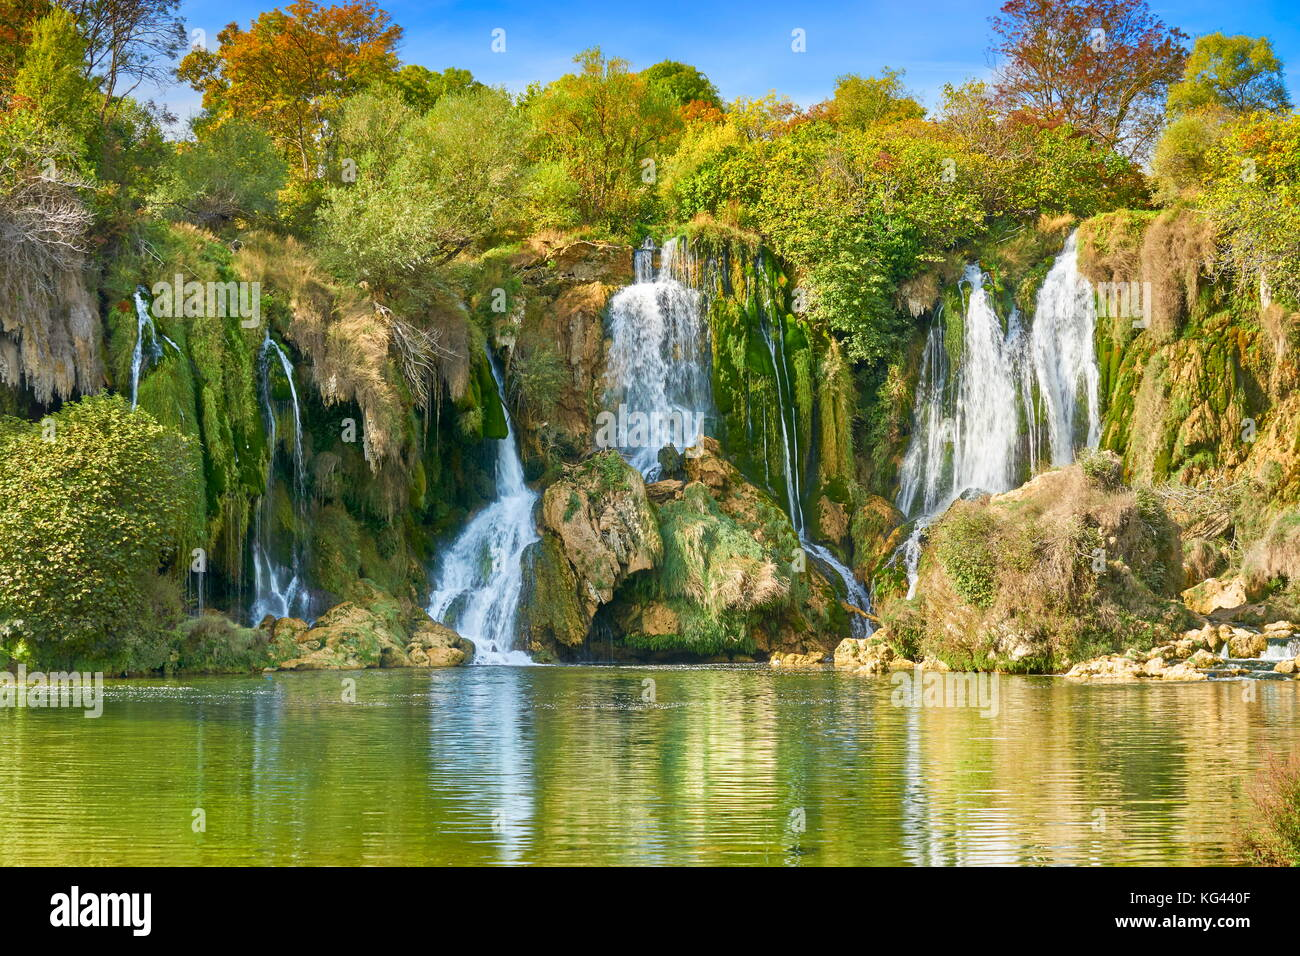 Kravica waterfalls, Bosnia and Hercegovina - Stock Image